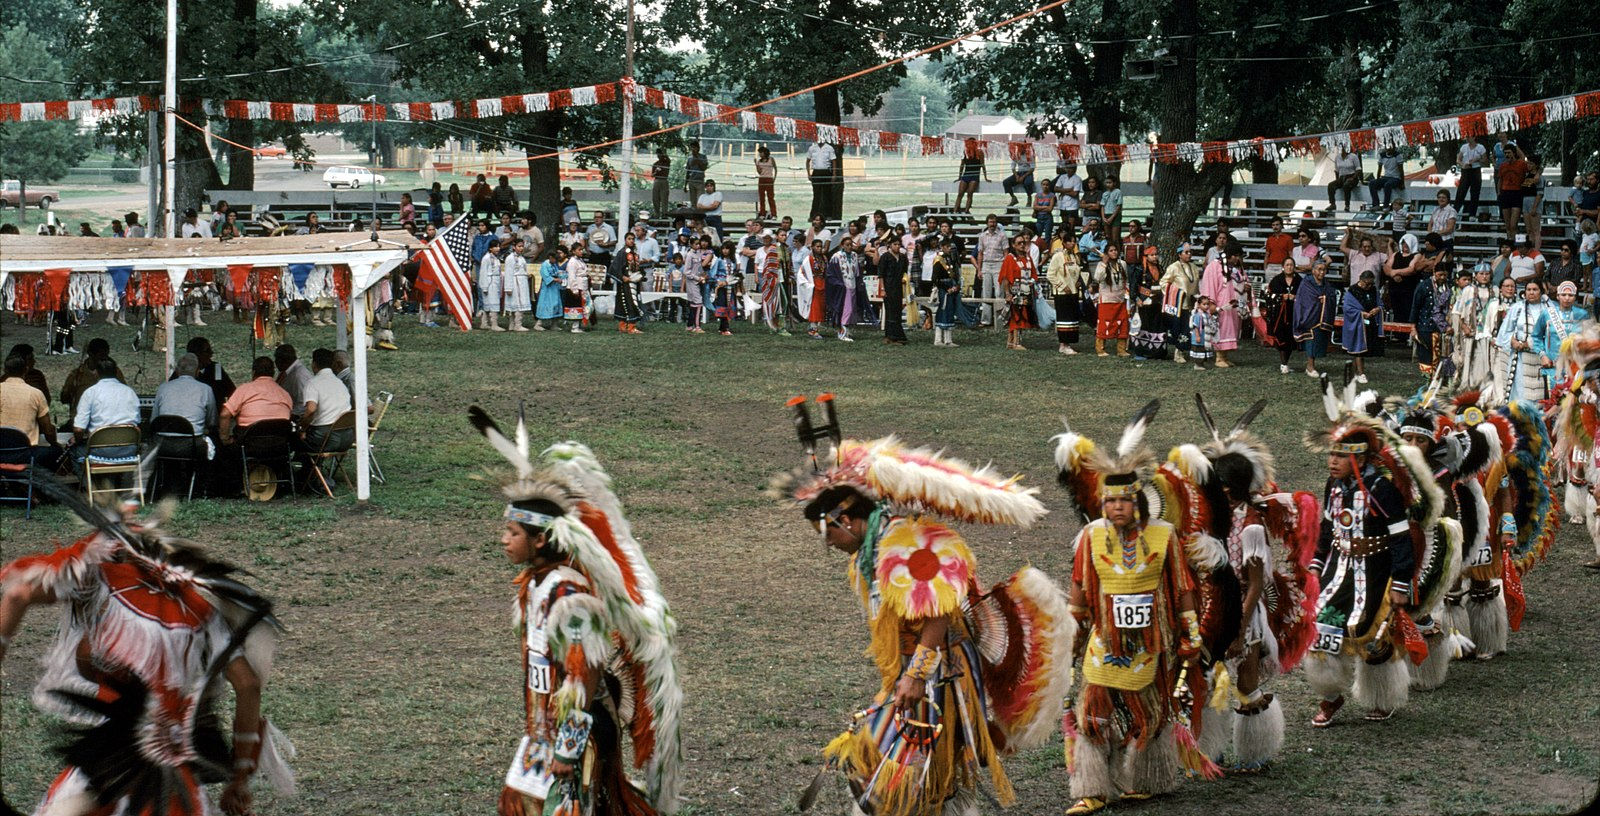 America casino in museum native powwows public representation self tribal march 2008 no deposit casino coupon code list